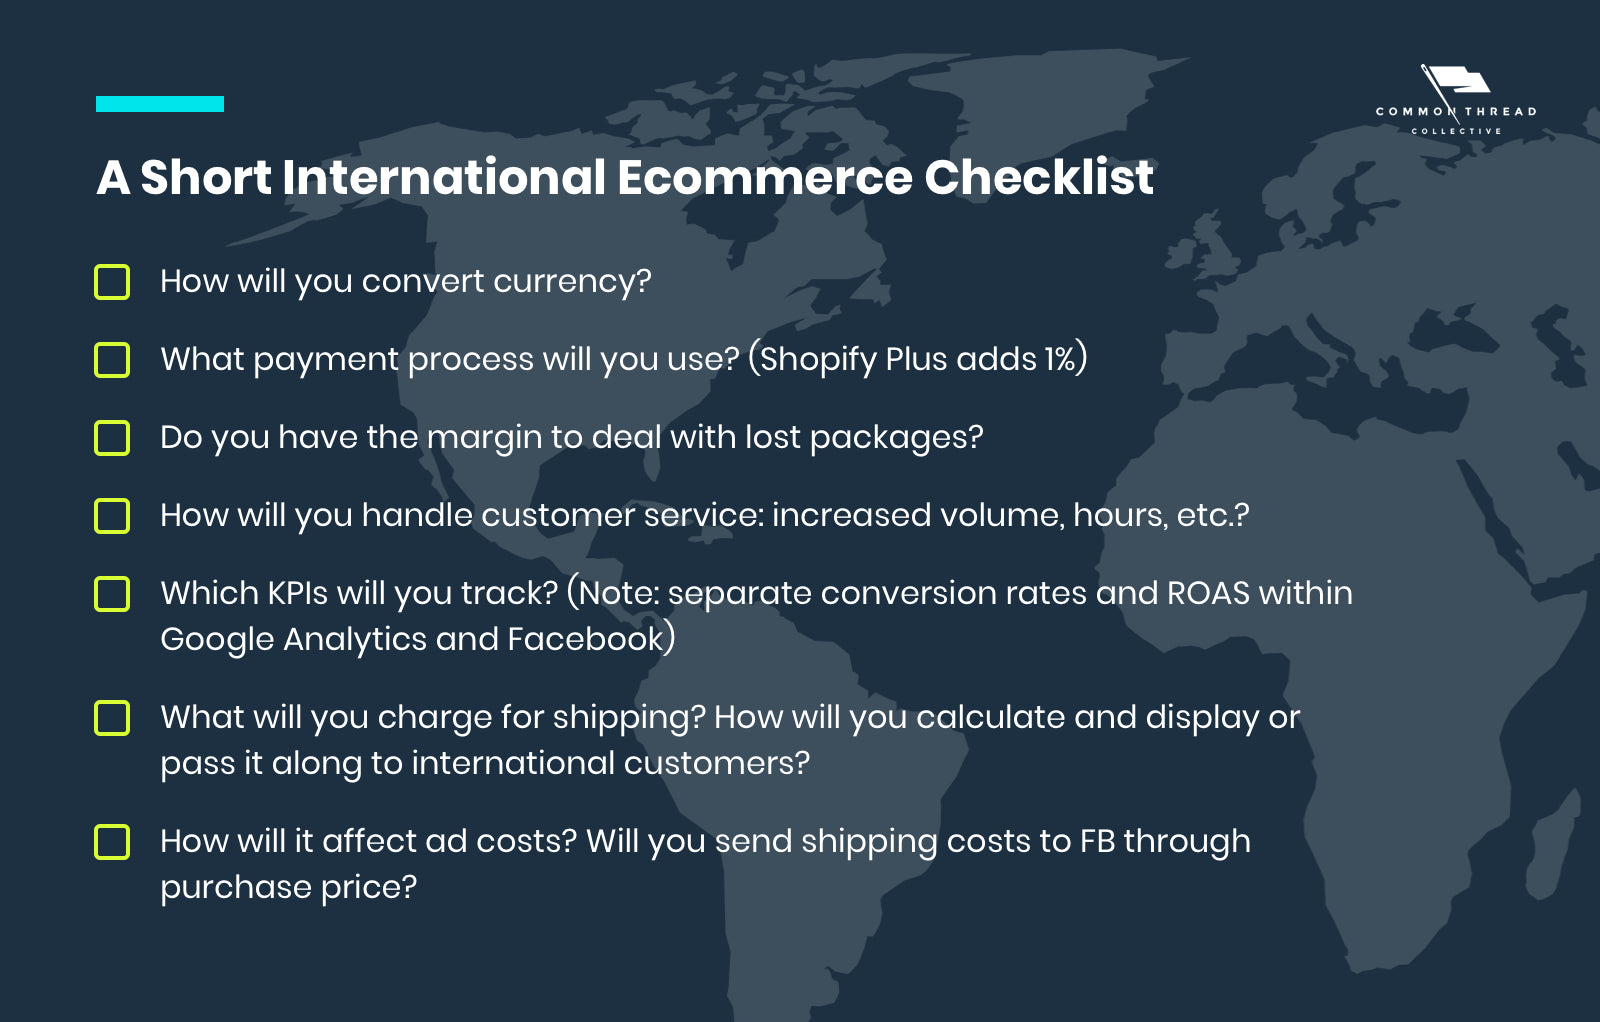 A Short International Ecommerce Checklist